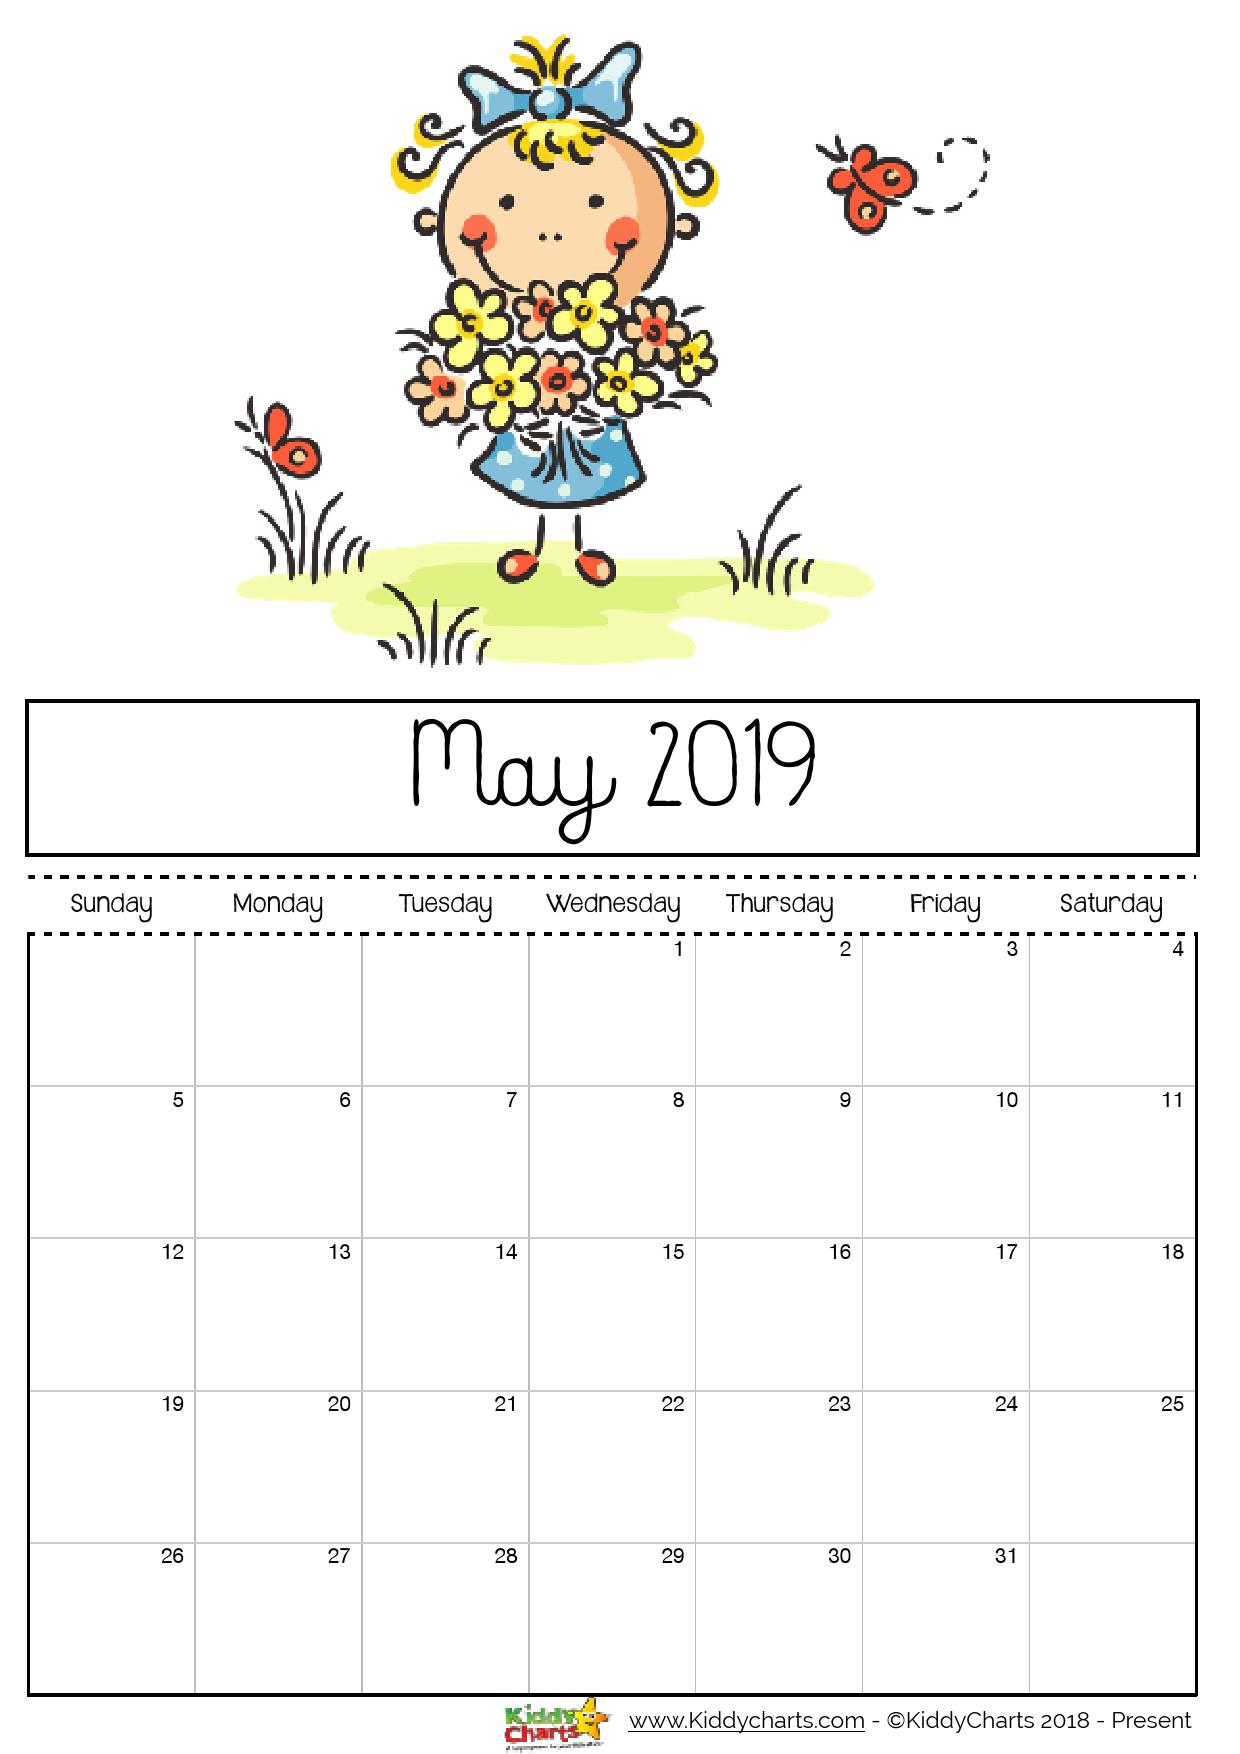 Cute May 2019 Calendar Printable